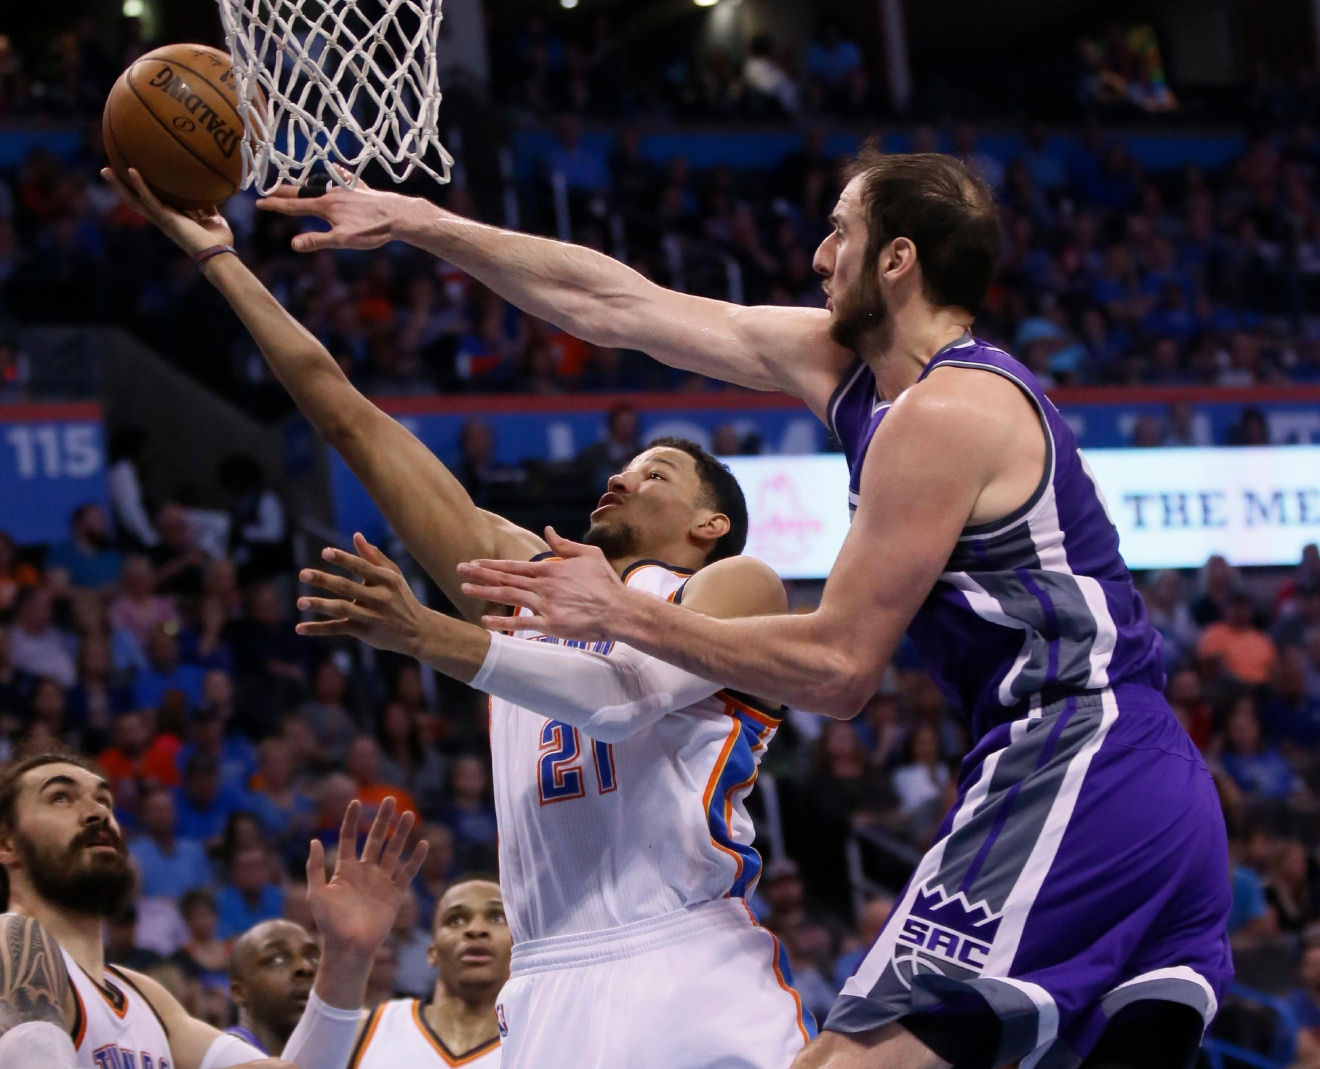 Sacramento Kings center Kosta Koufos, right, defends as Oklahoma City Thunder forward Andre Roberson (21) shoots in the second quarter of an NBA basketball game in Oklahoma City, Saturday, March 18, 2017. (AP Photo/Sue Ogrocki)